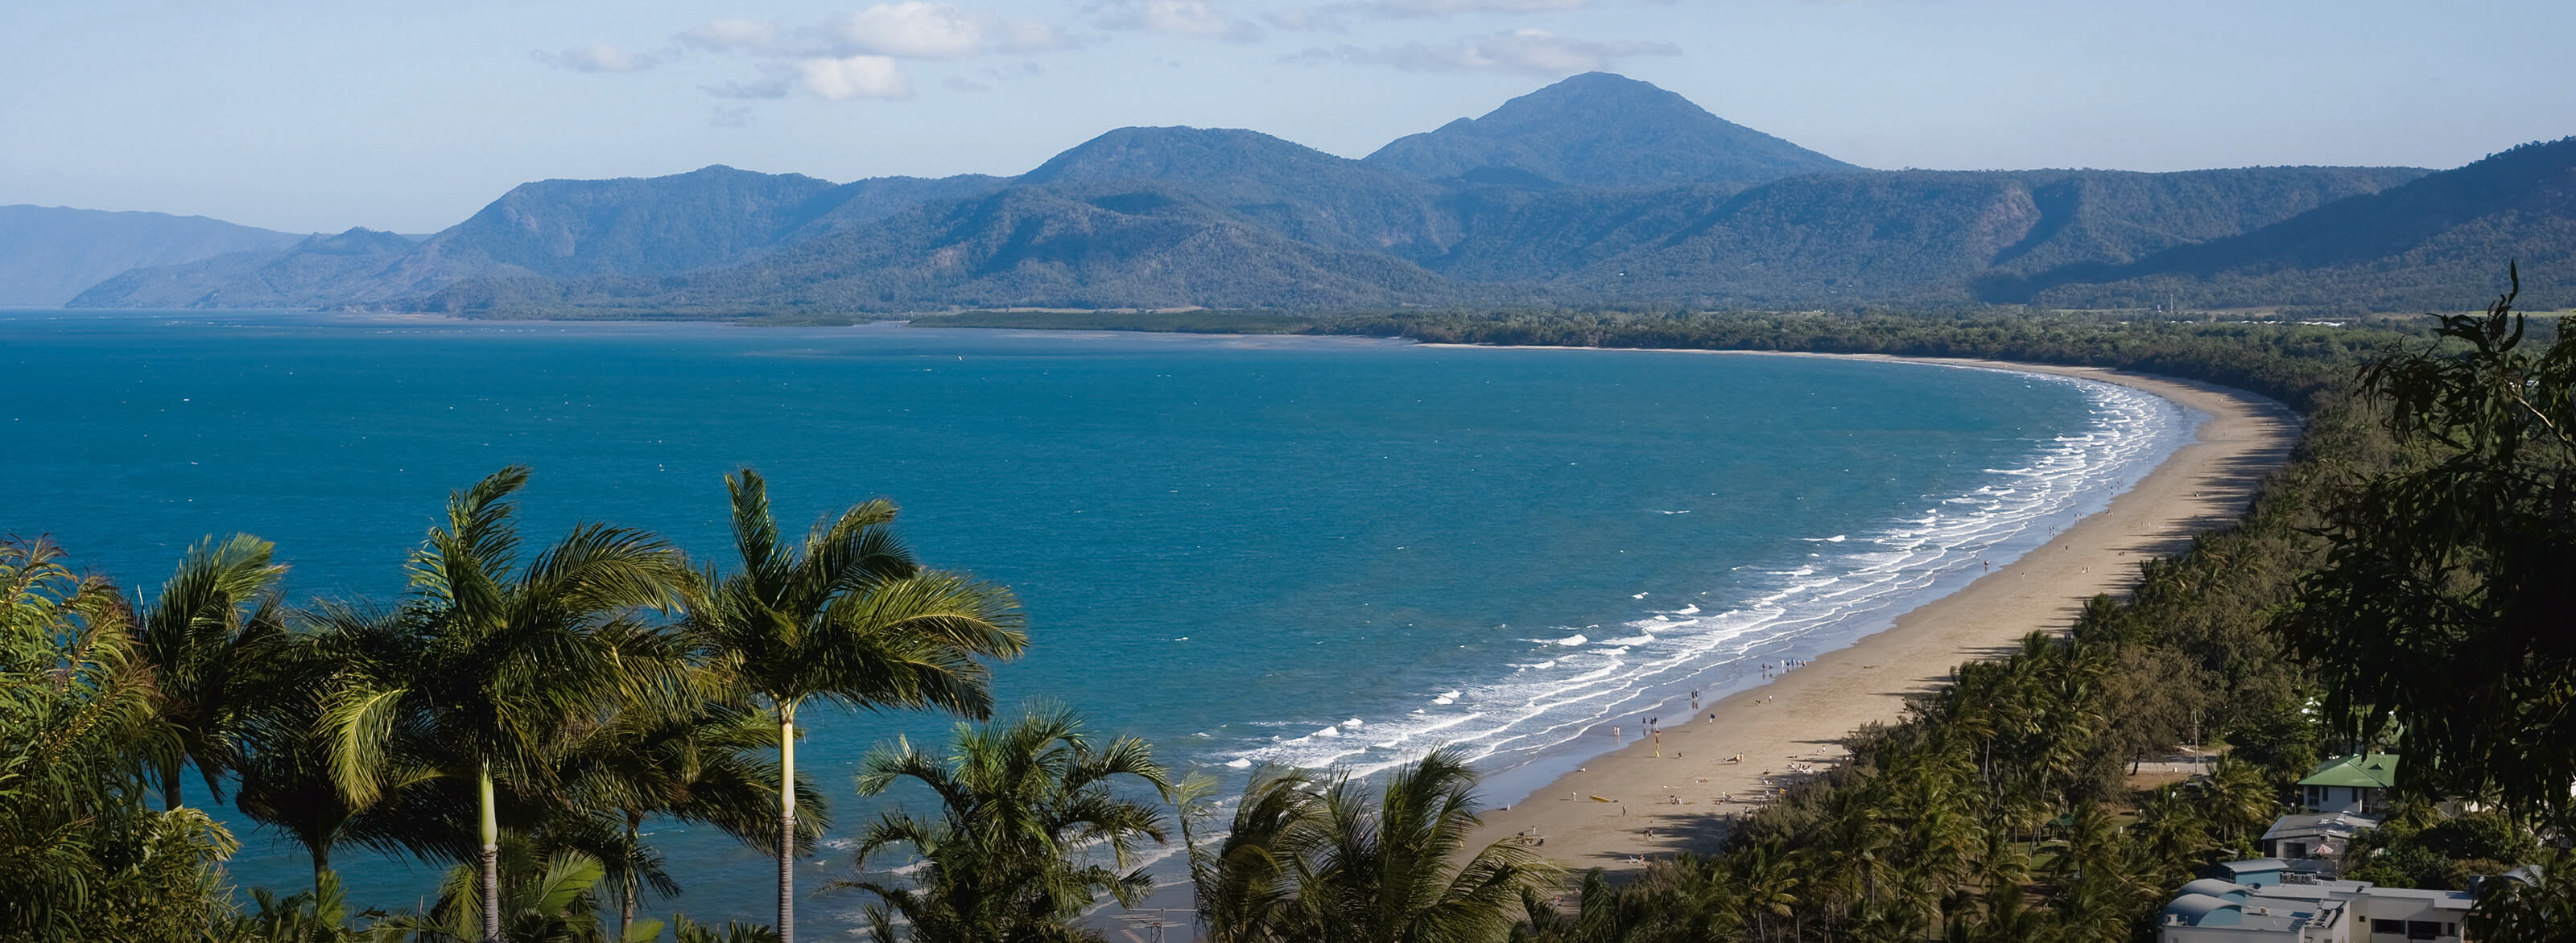 View of four mile beach from lookout